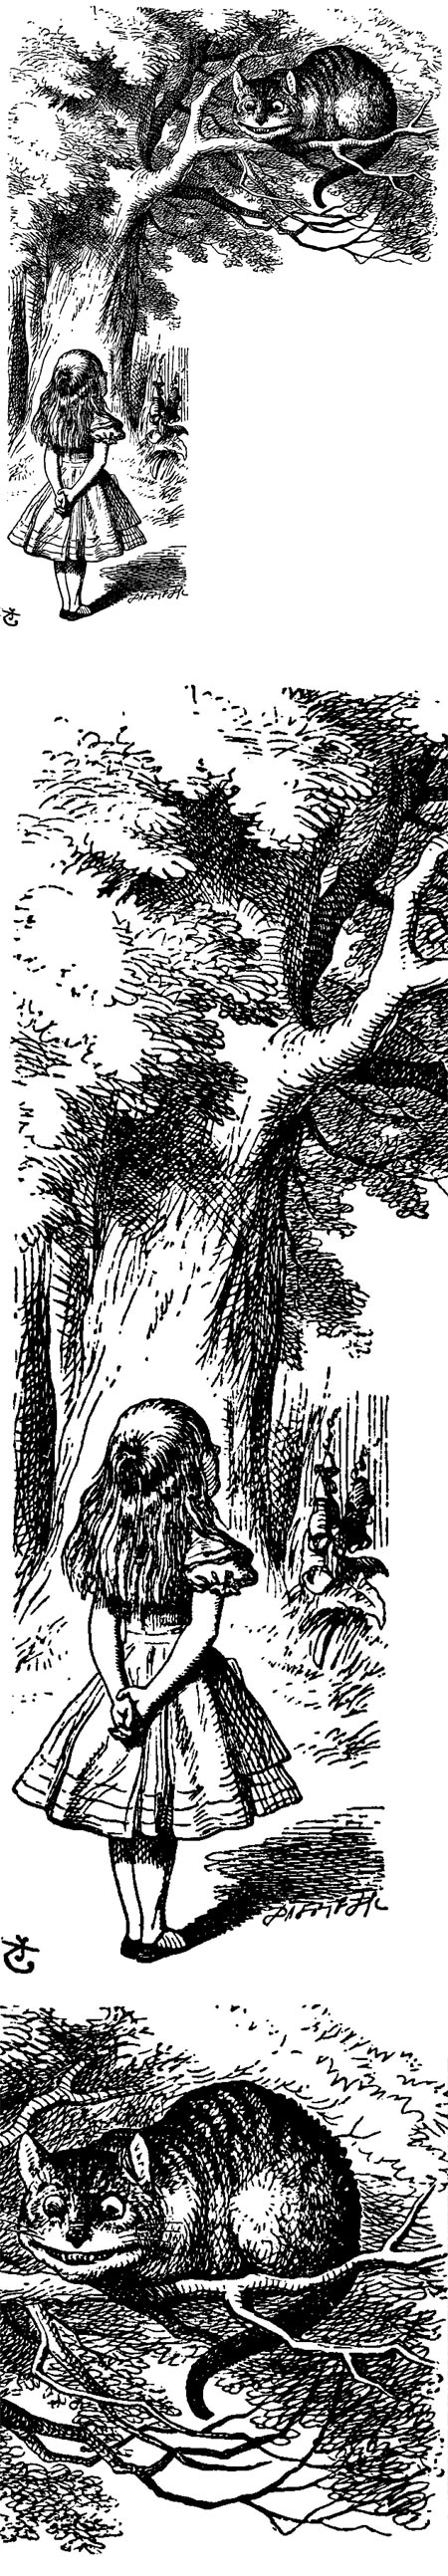 John Tenniel's Cheshire Cat for Alice's Adventures in Wonderland